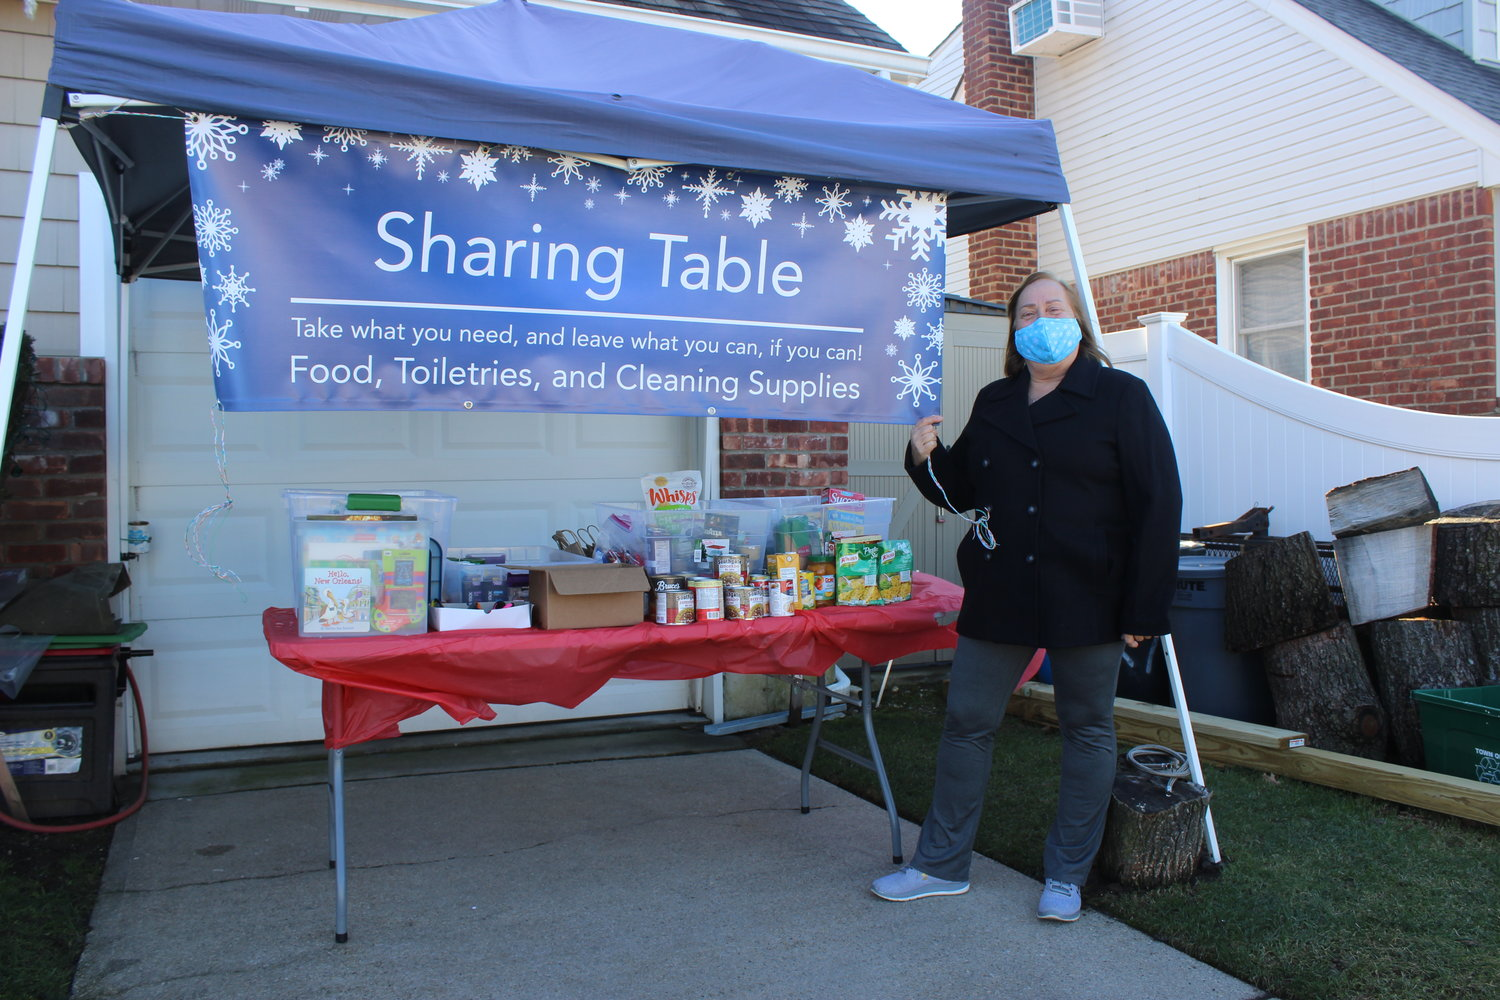 Diane Carannante started East Meadow's Sharing Table at her home on Sheila Court. She encourages residents to either drop off food and supplies or take any that they need.